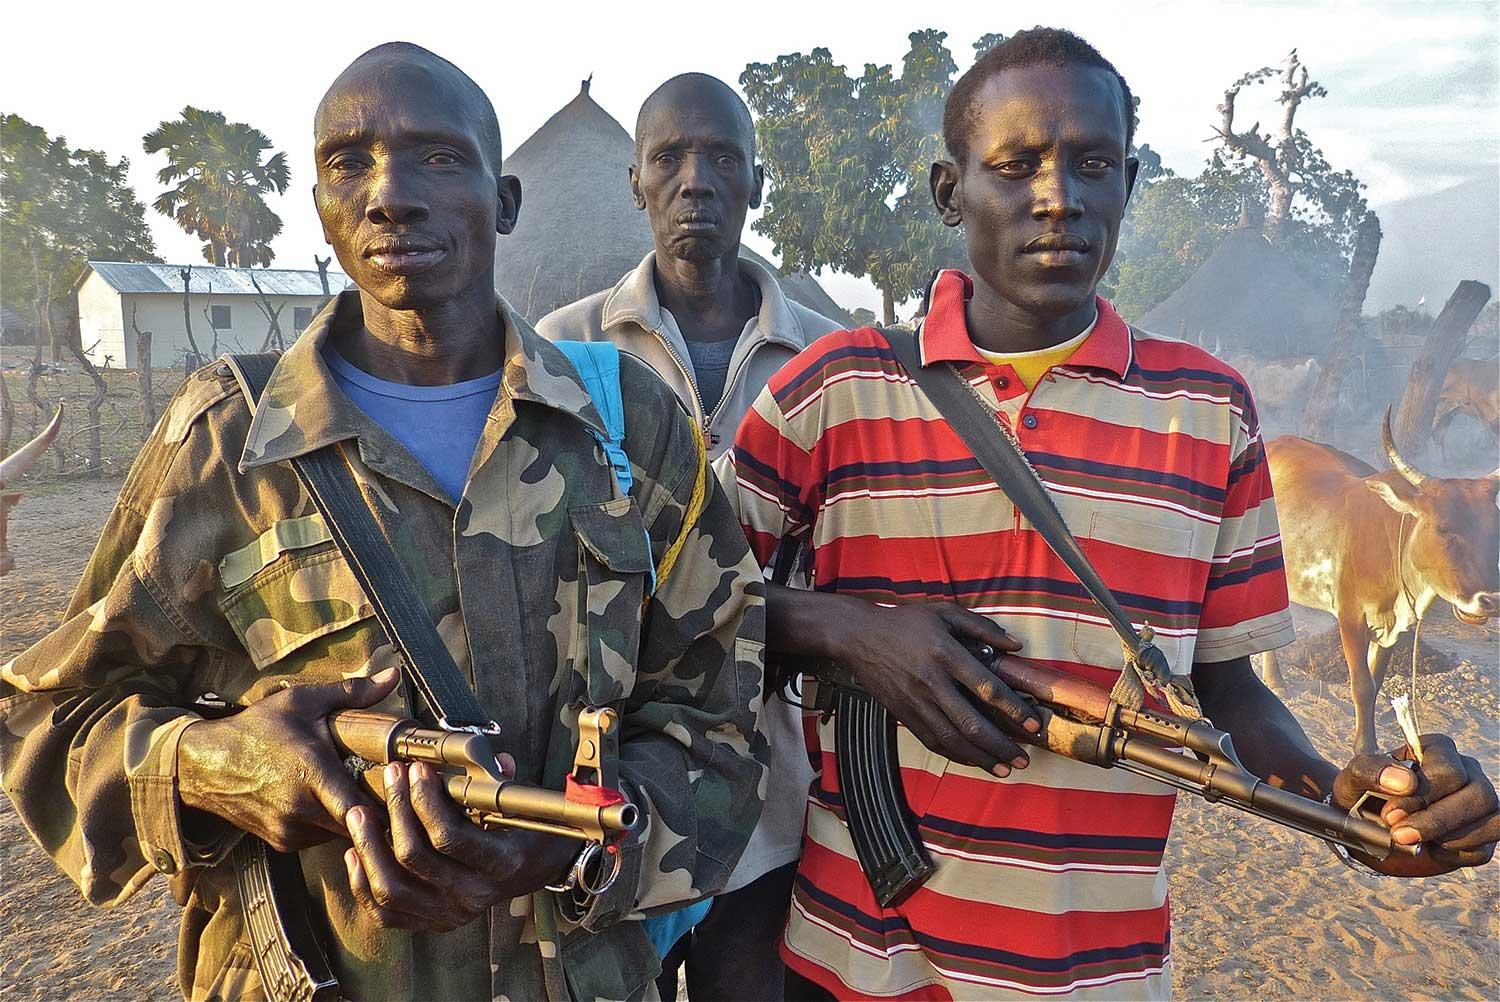 Local militia, two with AK-47s, guard the Duk Lost Boys Clinic compound located behind them